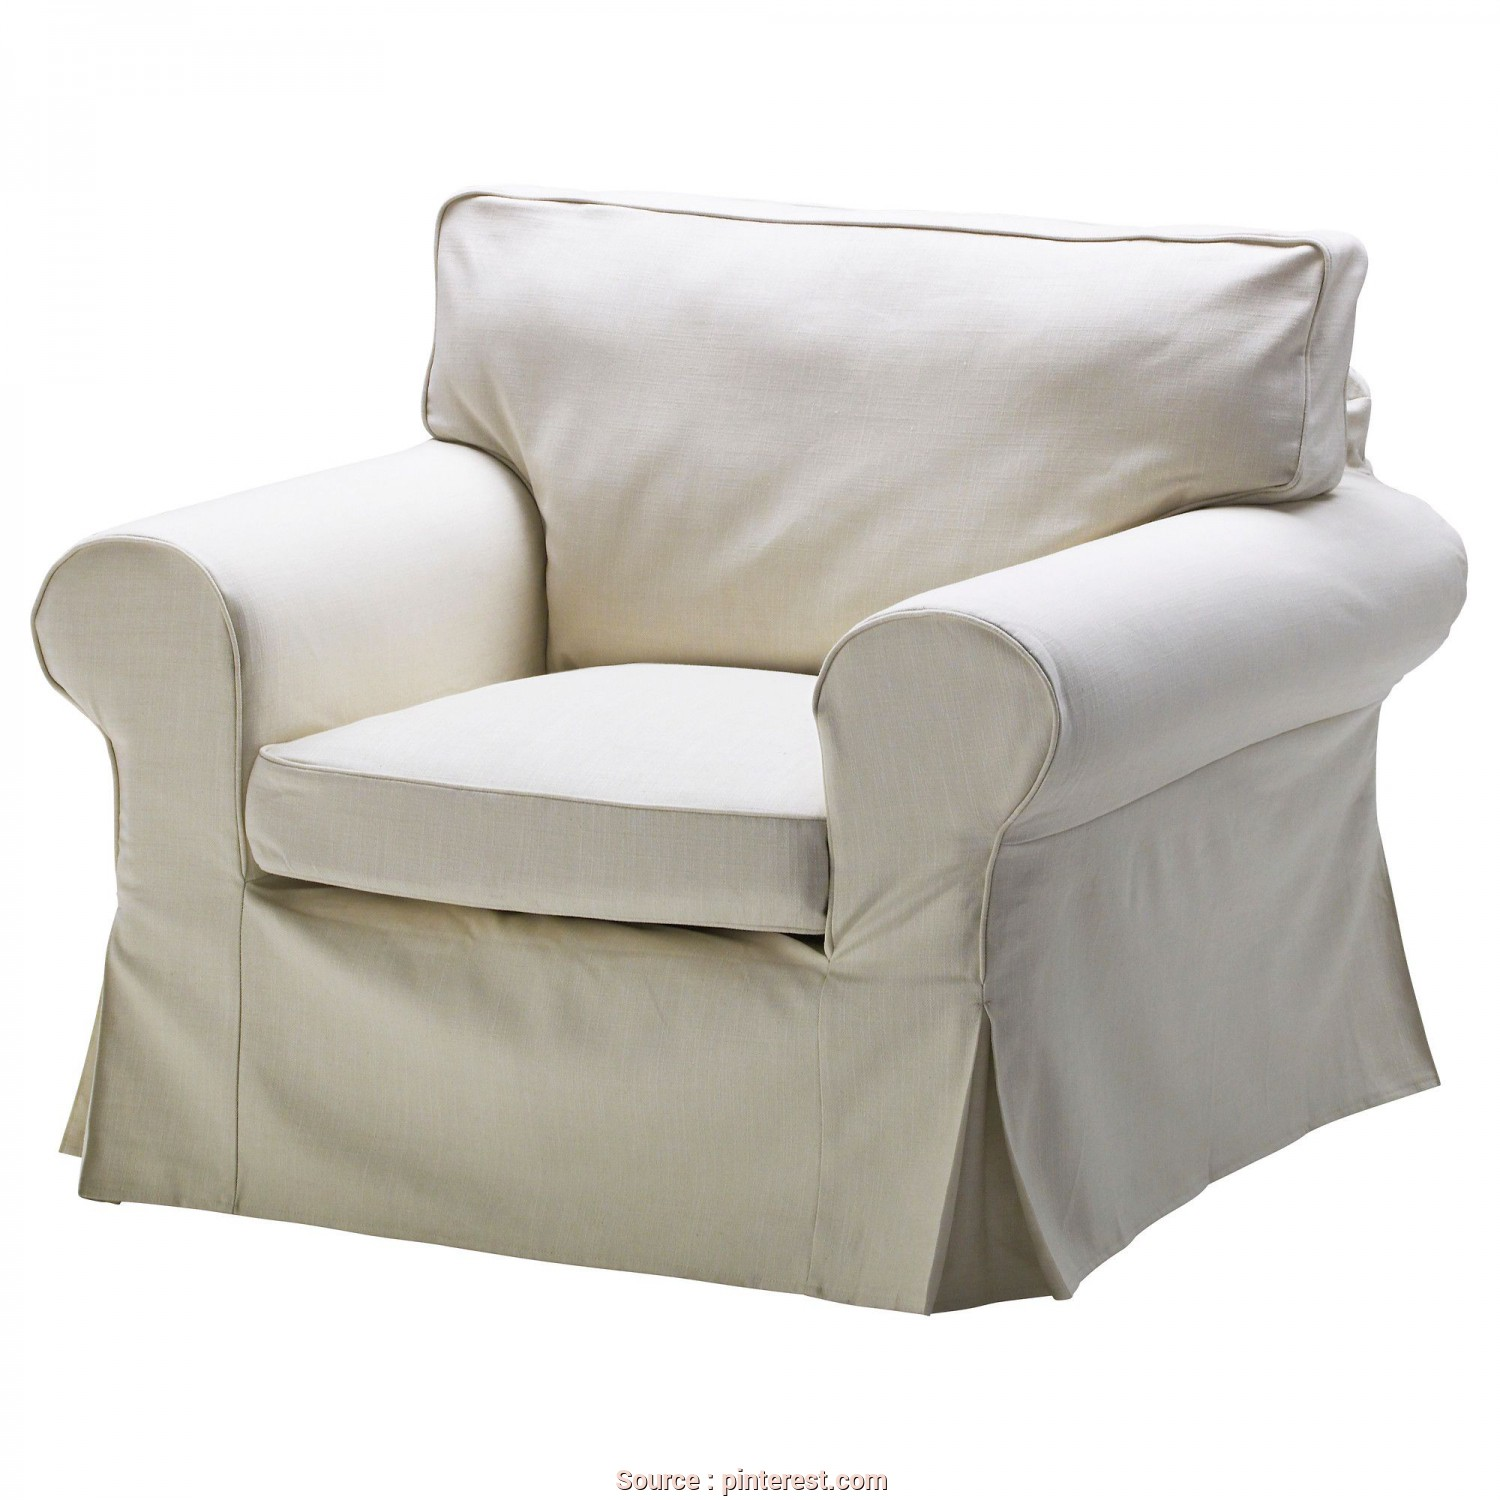 Pouf Letto Ikea Ektorp, Loveable EKTORP Chair Cover, IKEA,, The Home, Pinterest, Armchair